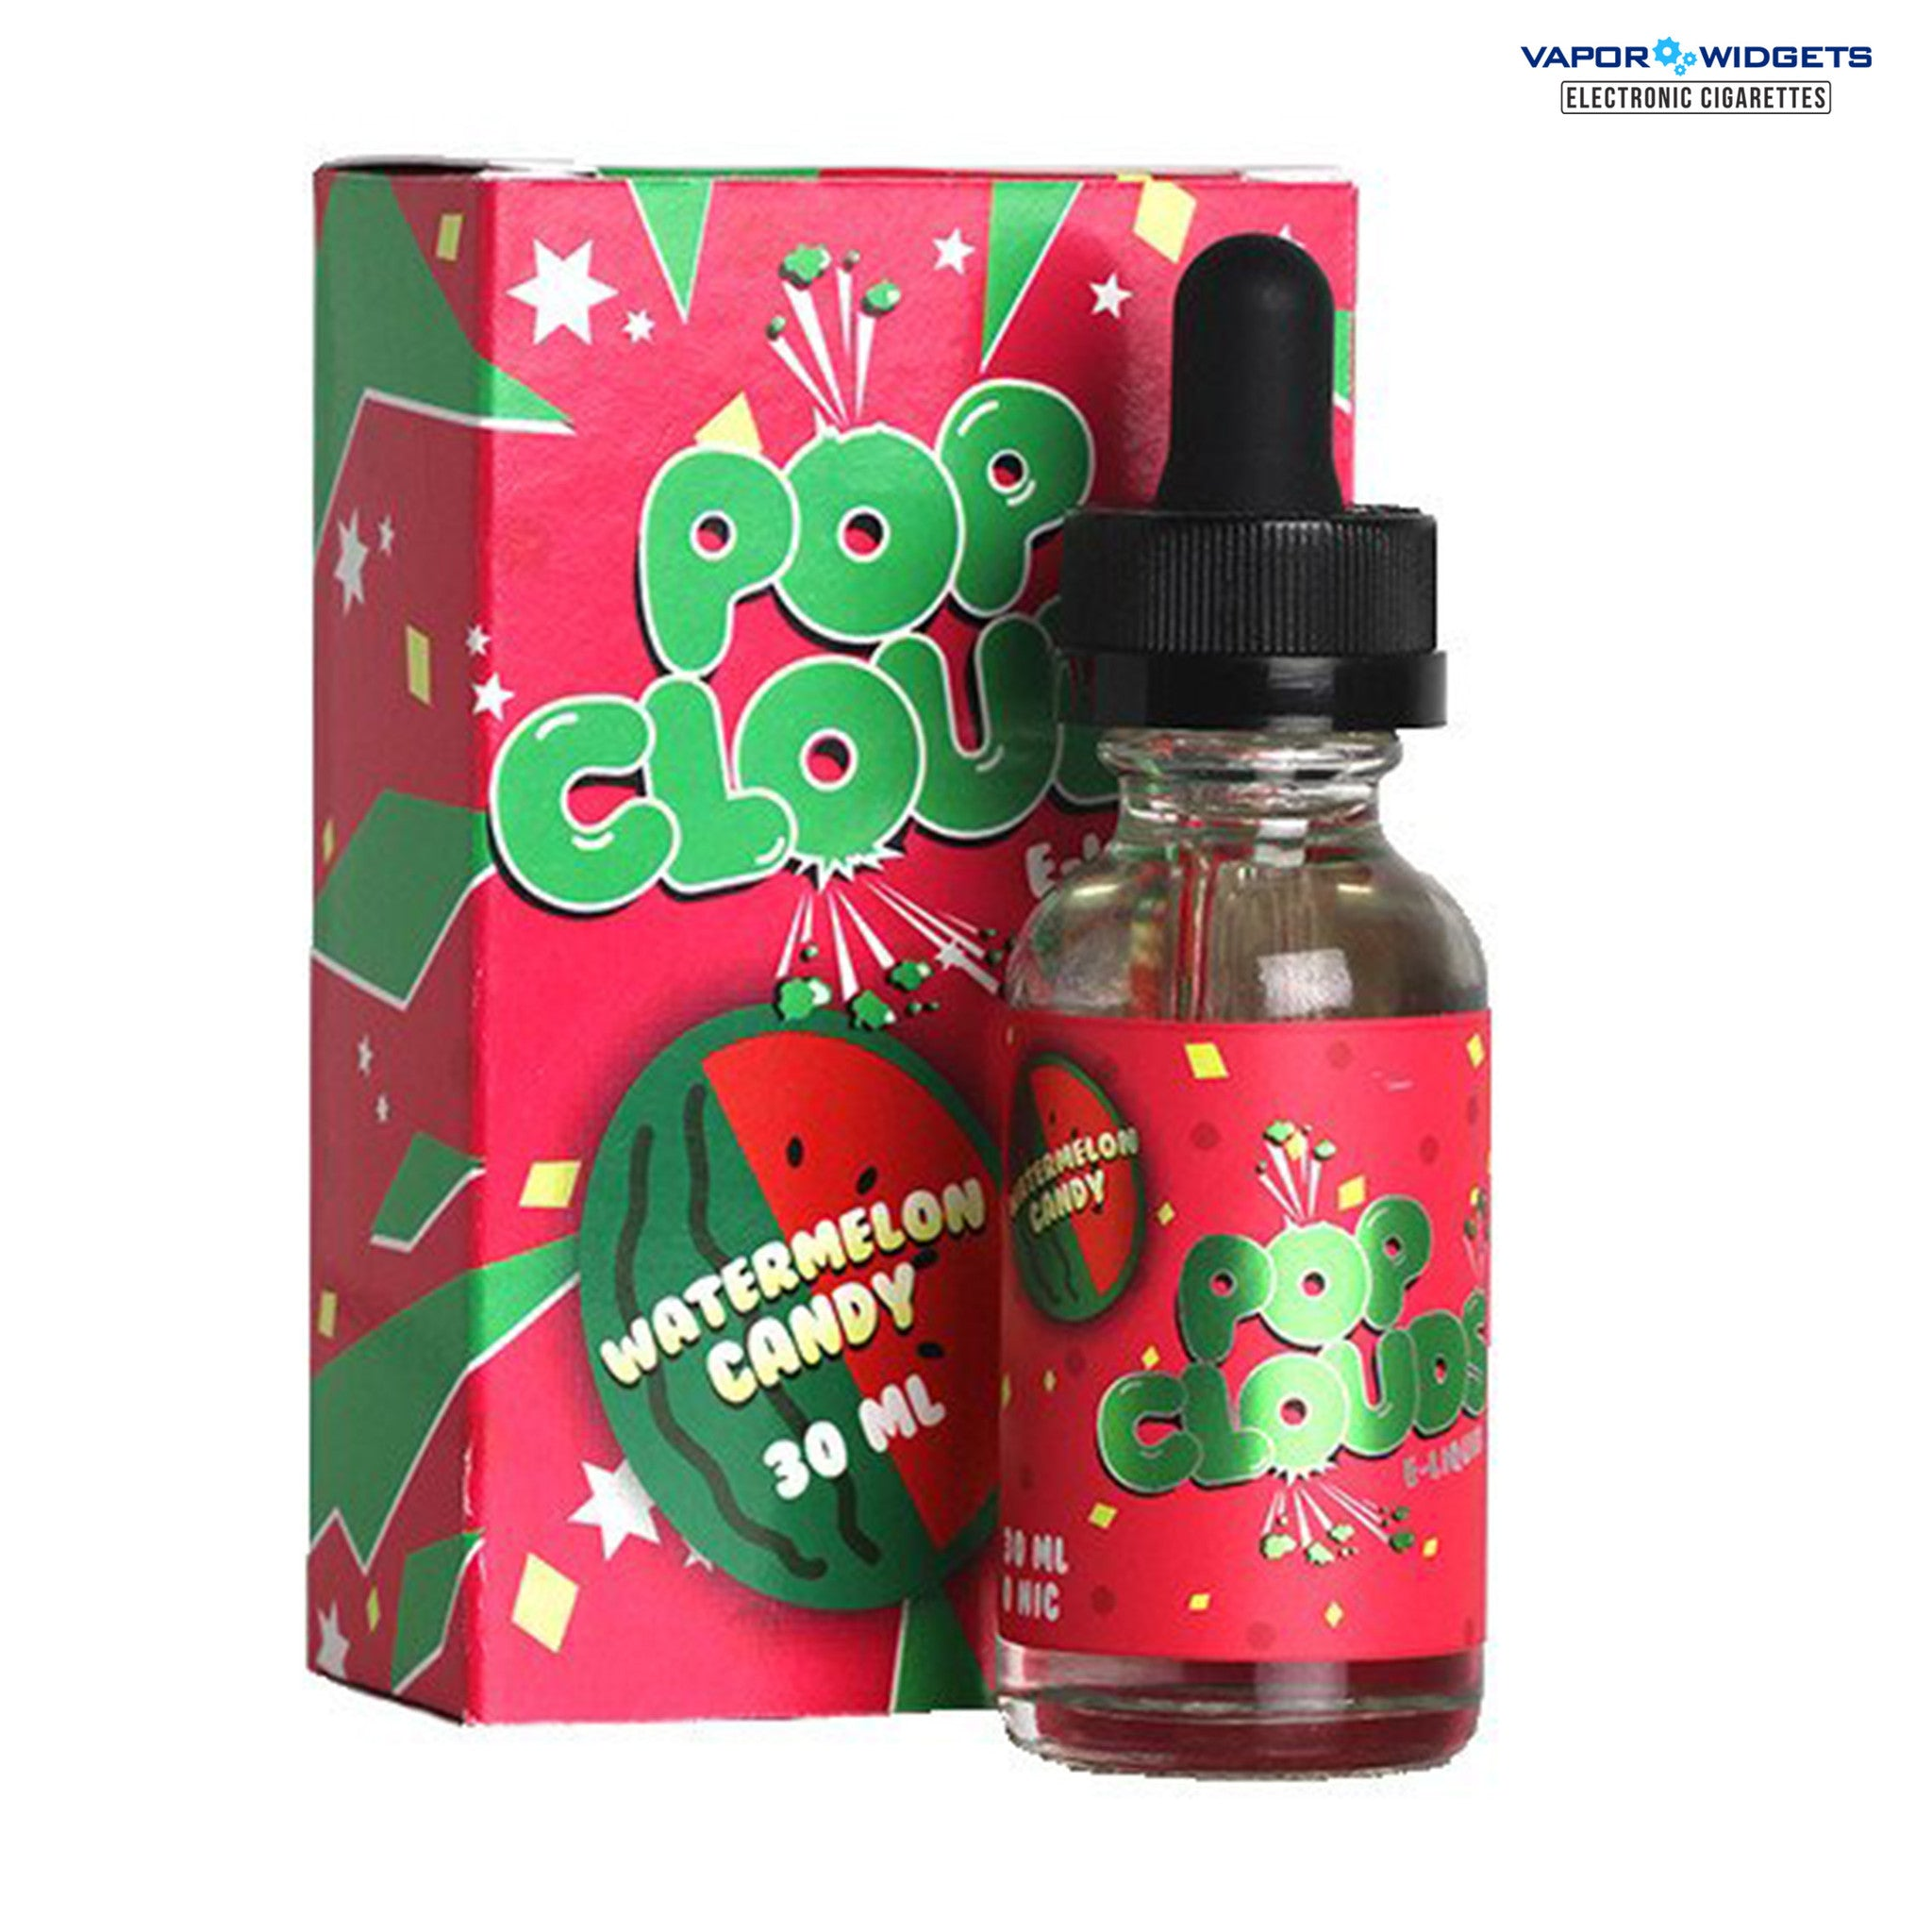 Pop Clouds Watermelon Candy High VG Vape juice | Vapor Widgets